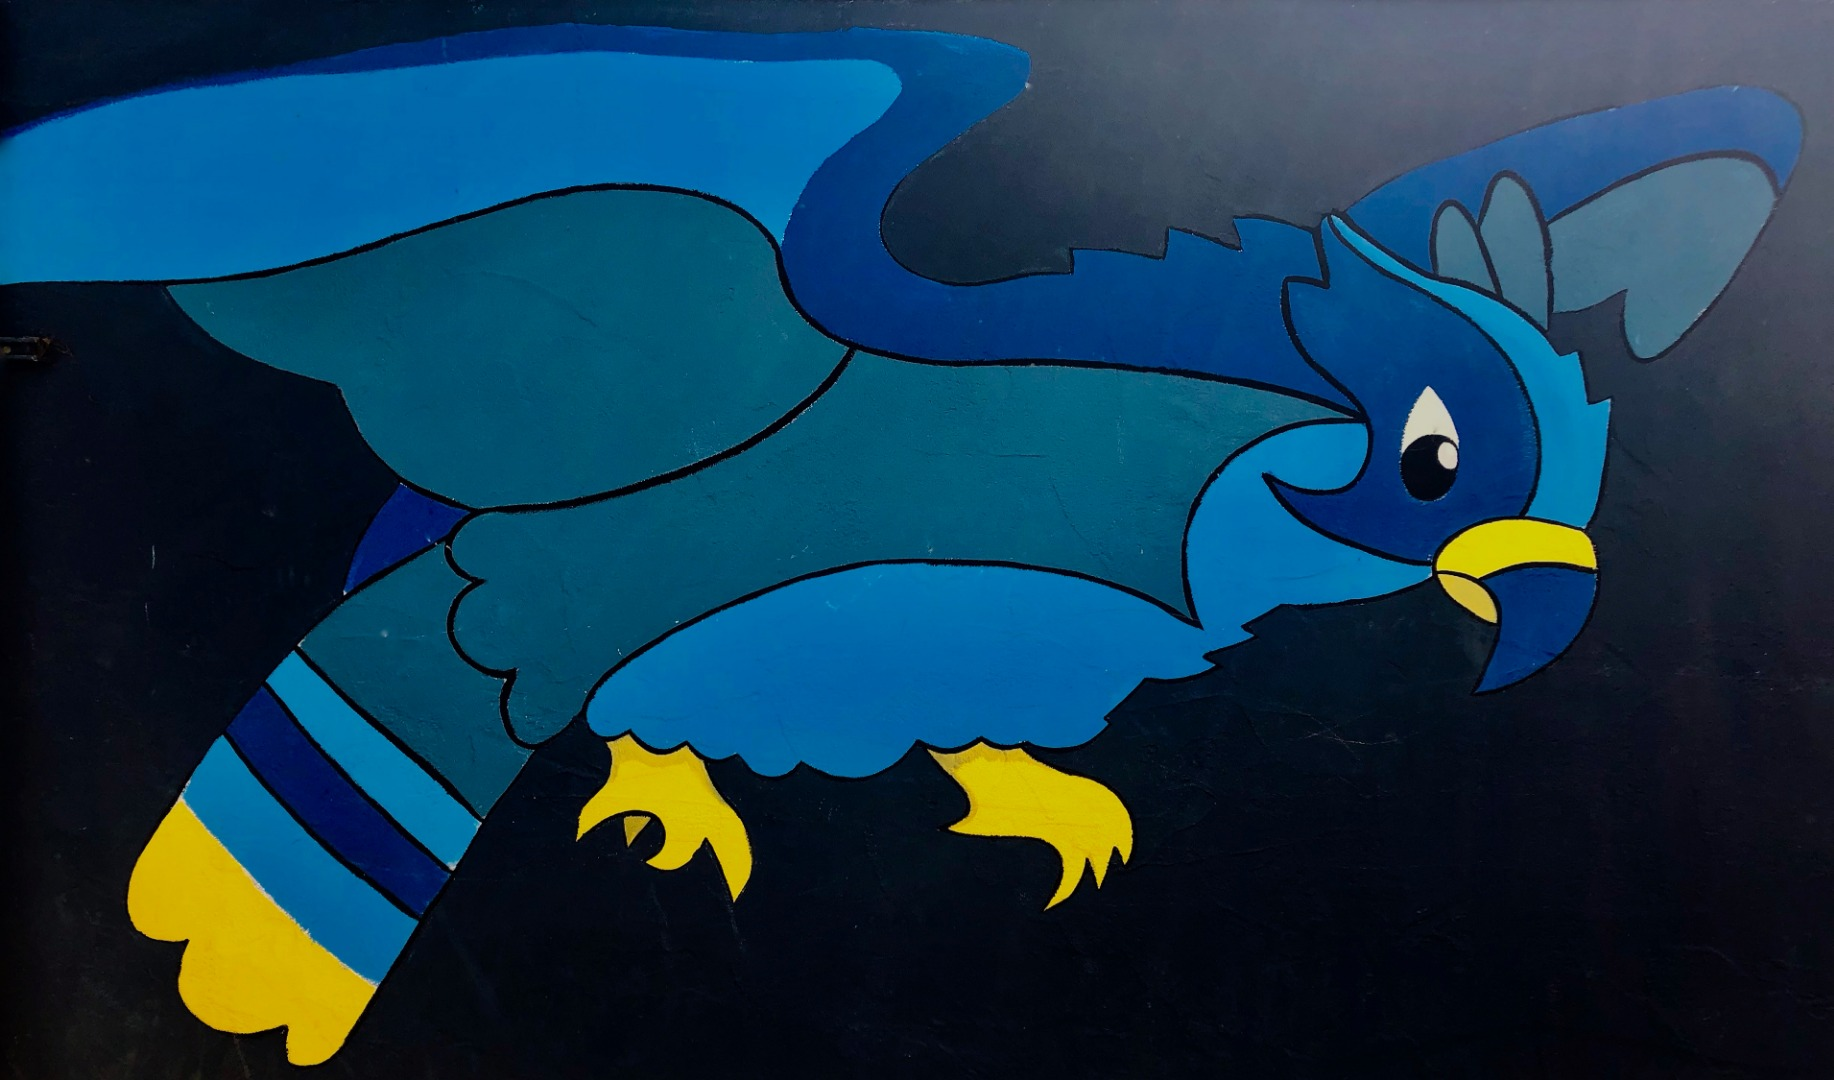 Falcon Mural Painting seen on campus